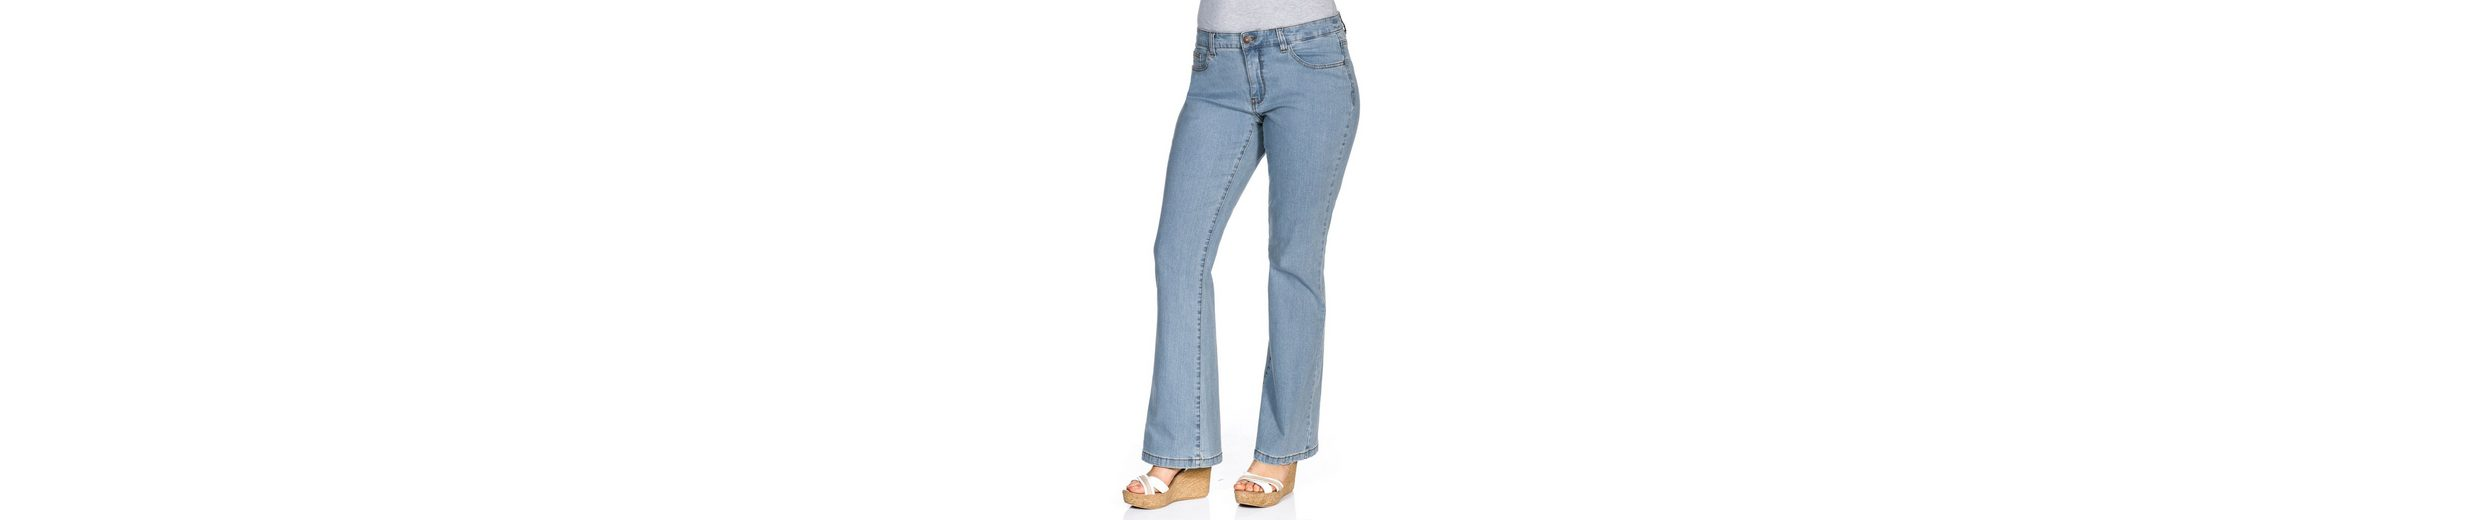 sheego Denim Stretch-Jeans Schnell Express Nagelneu Unisex 5bouC2